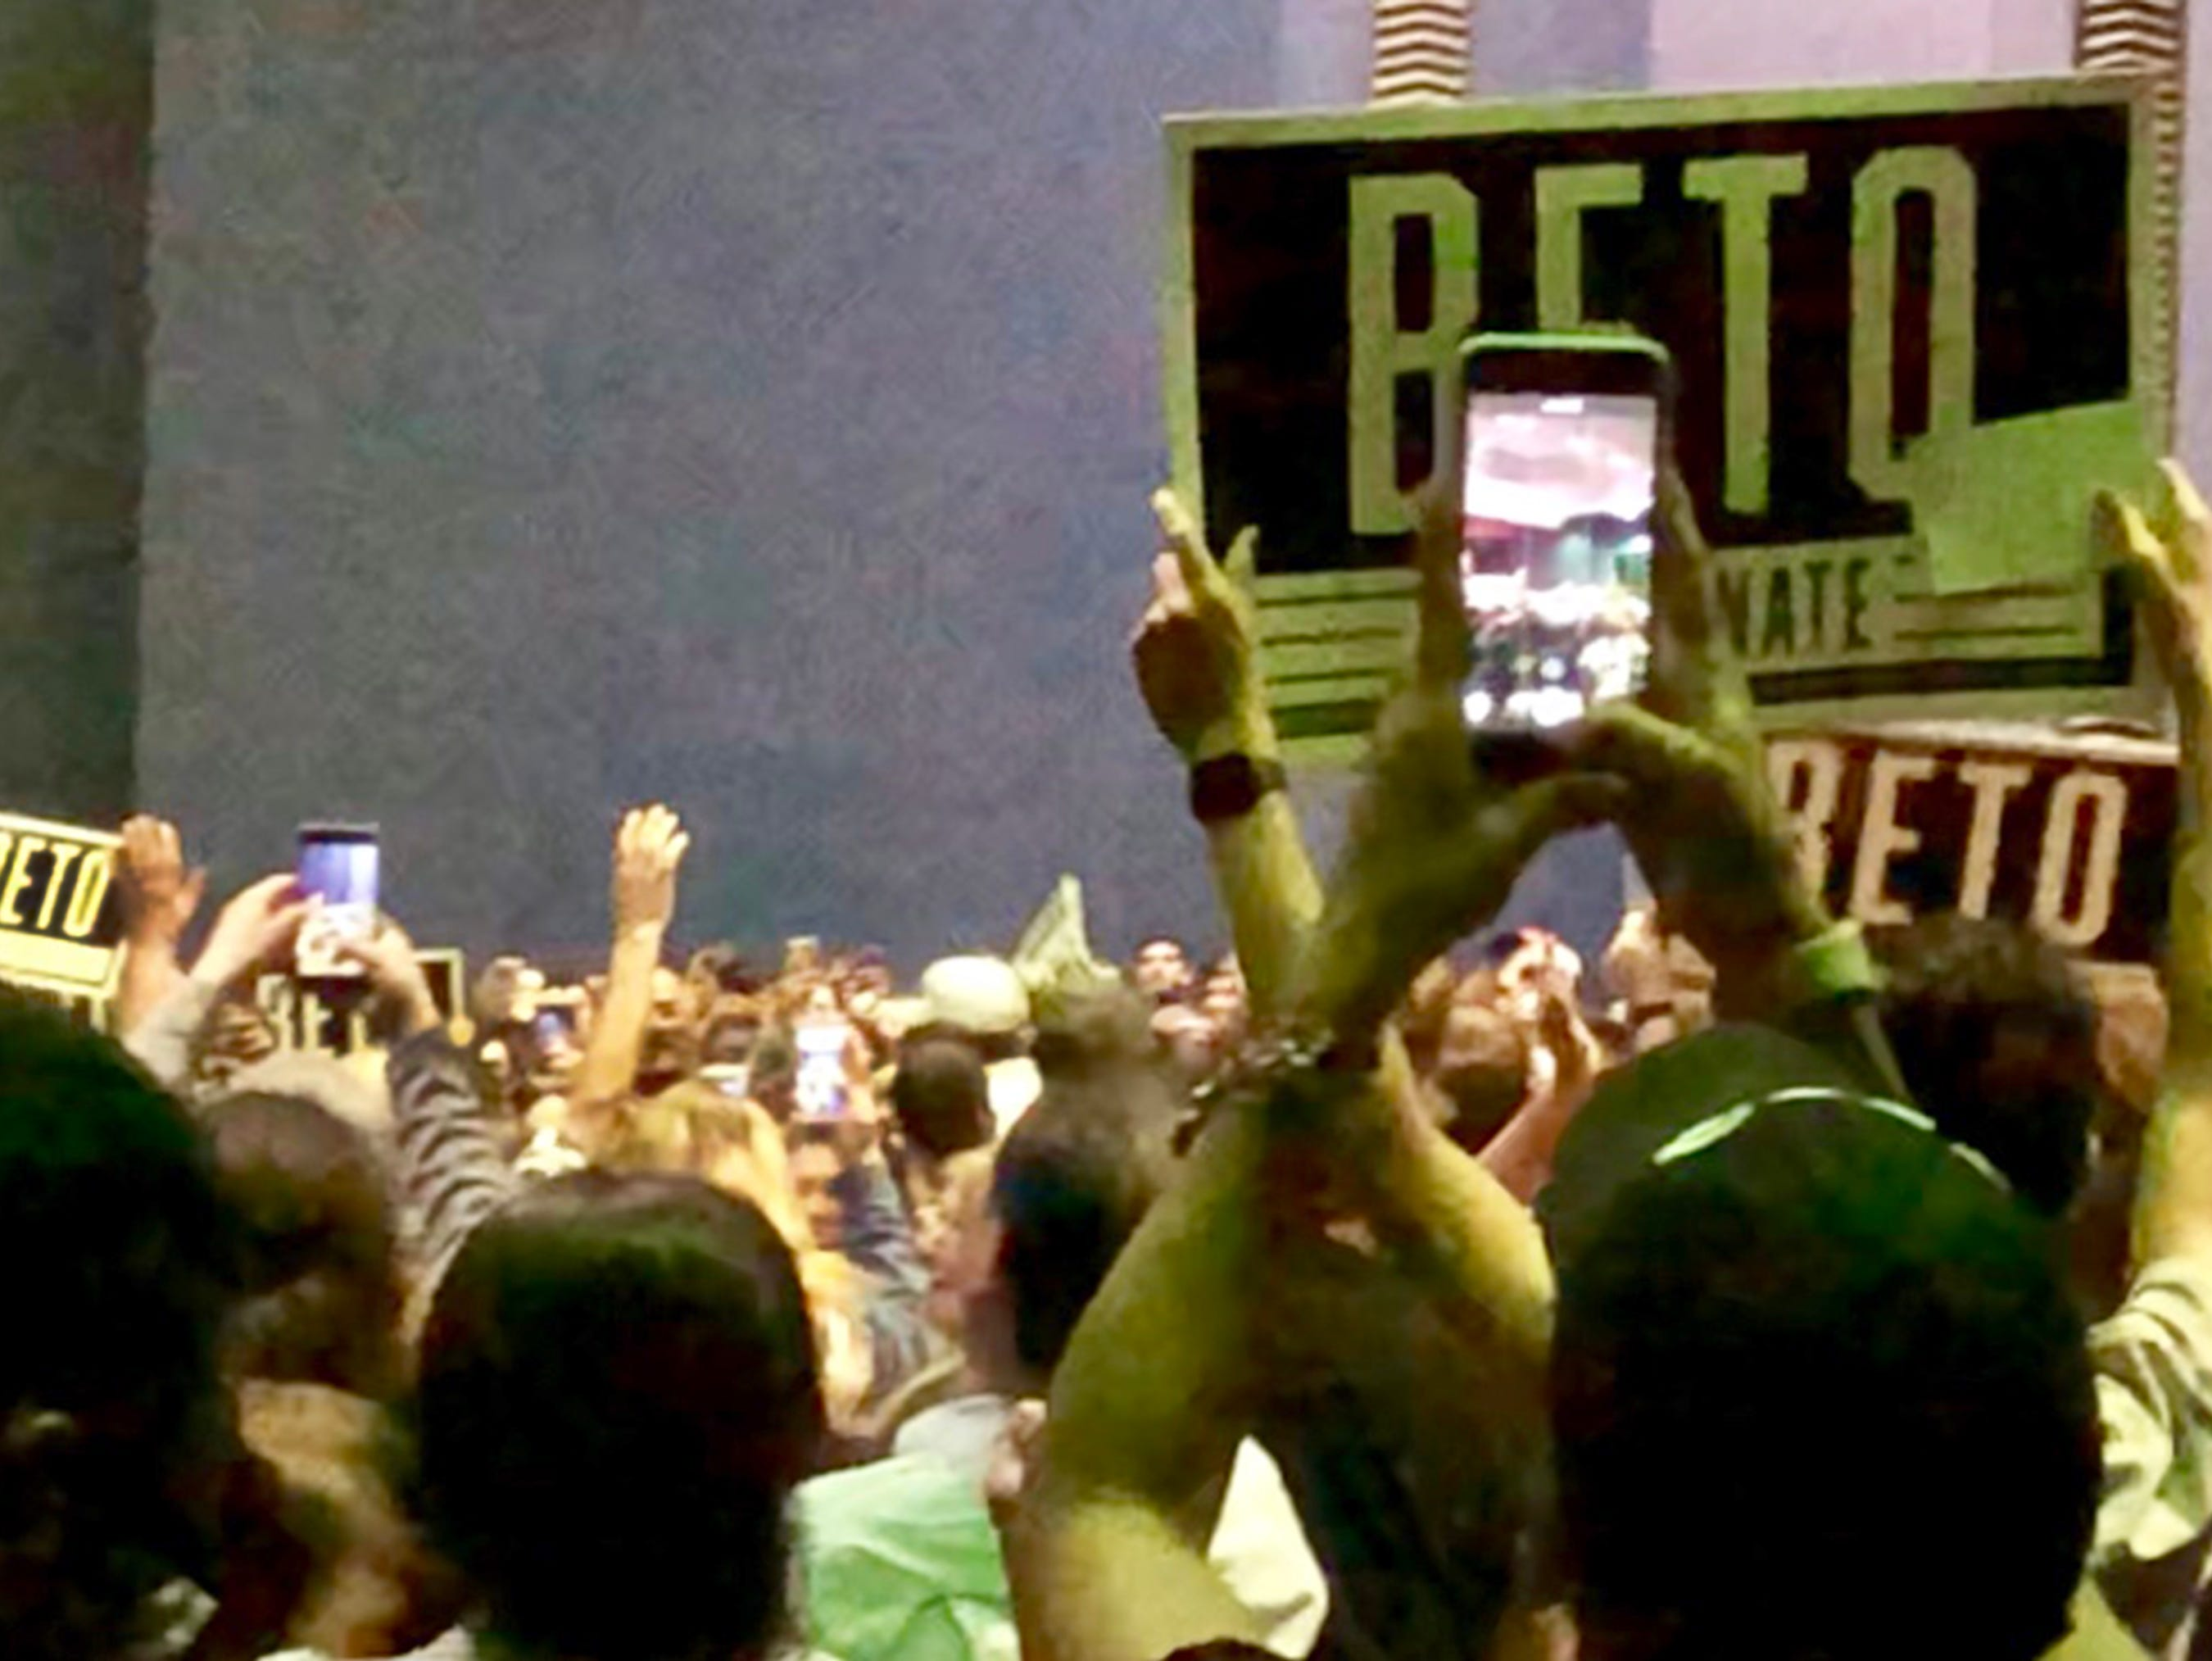 A capacity crowd cheers as Democratic U.S. Senate candidate Beto O'Rourke enters Magoffin Auditorium on the UTEP campus for a rally Monday night.